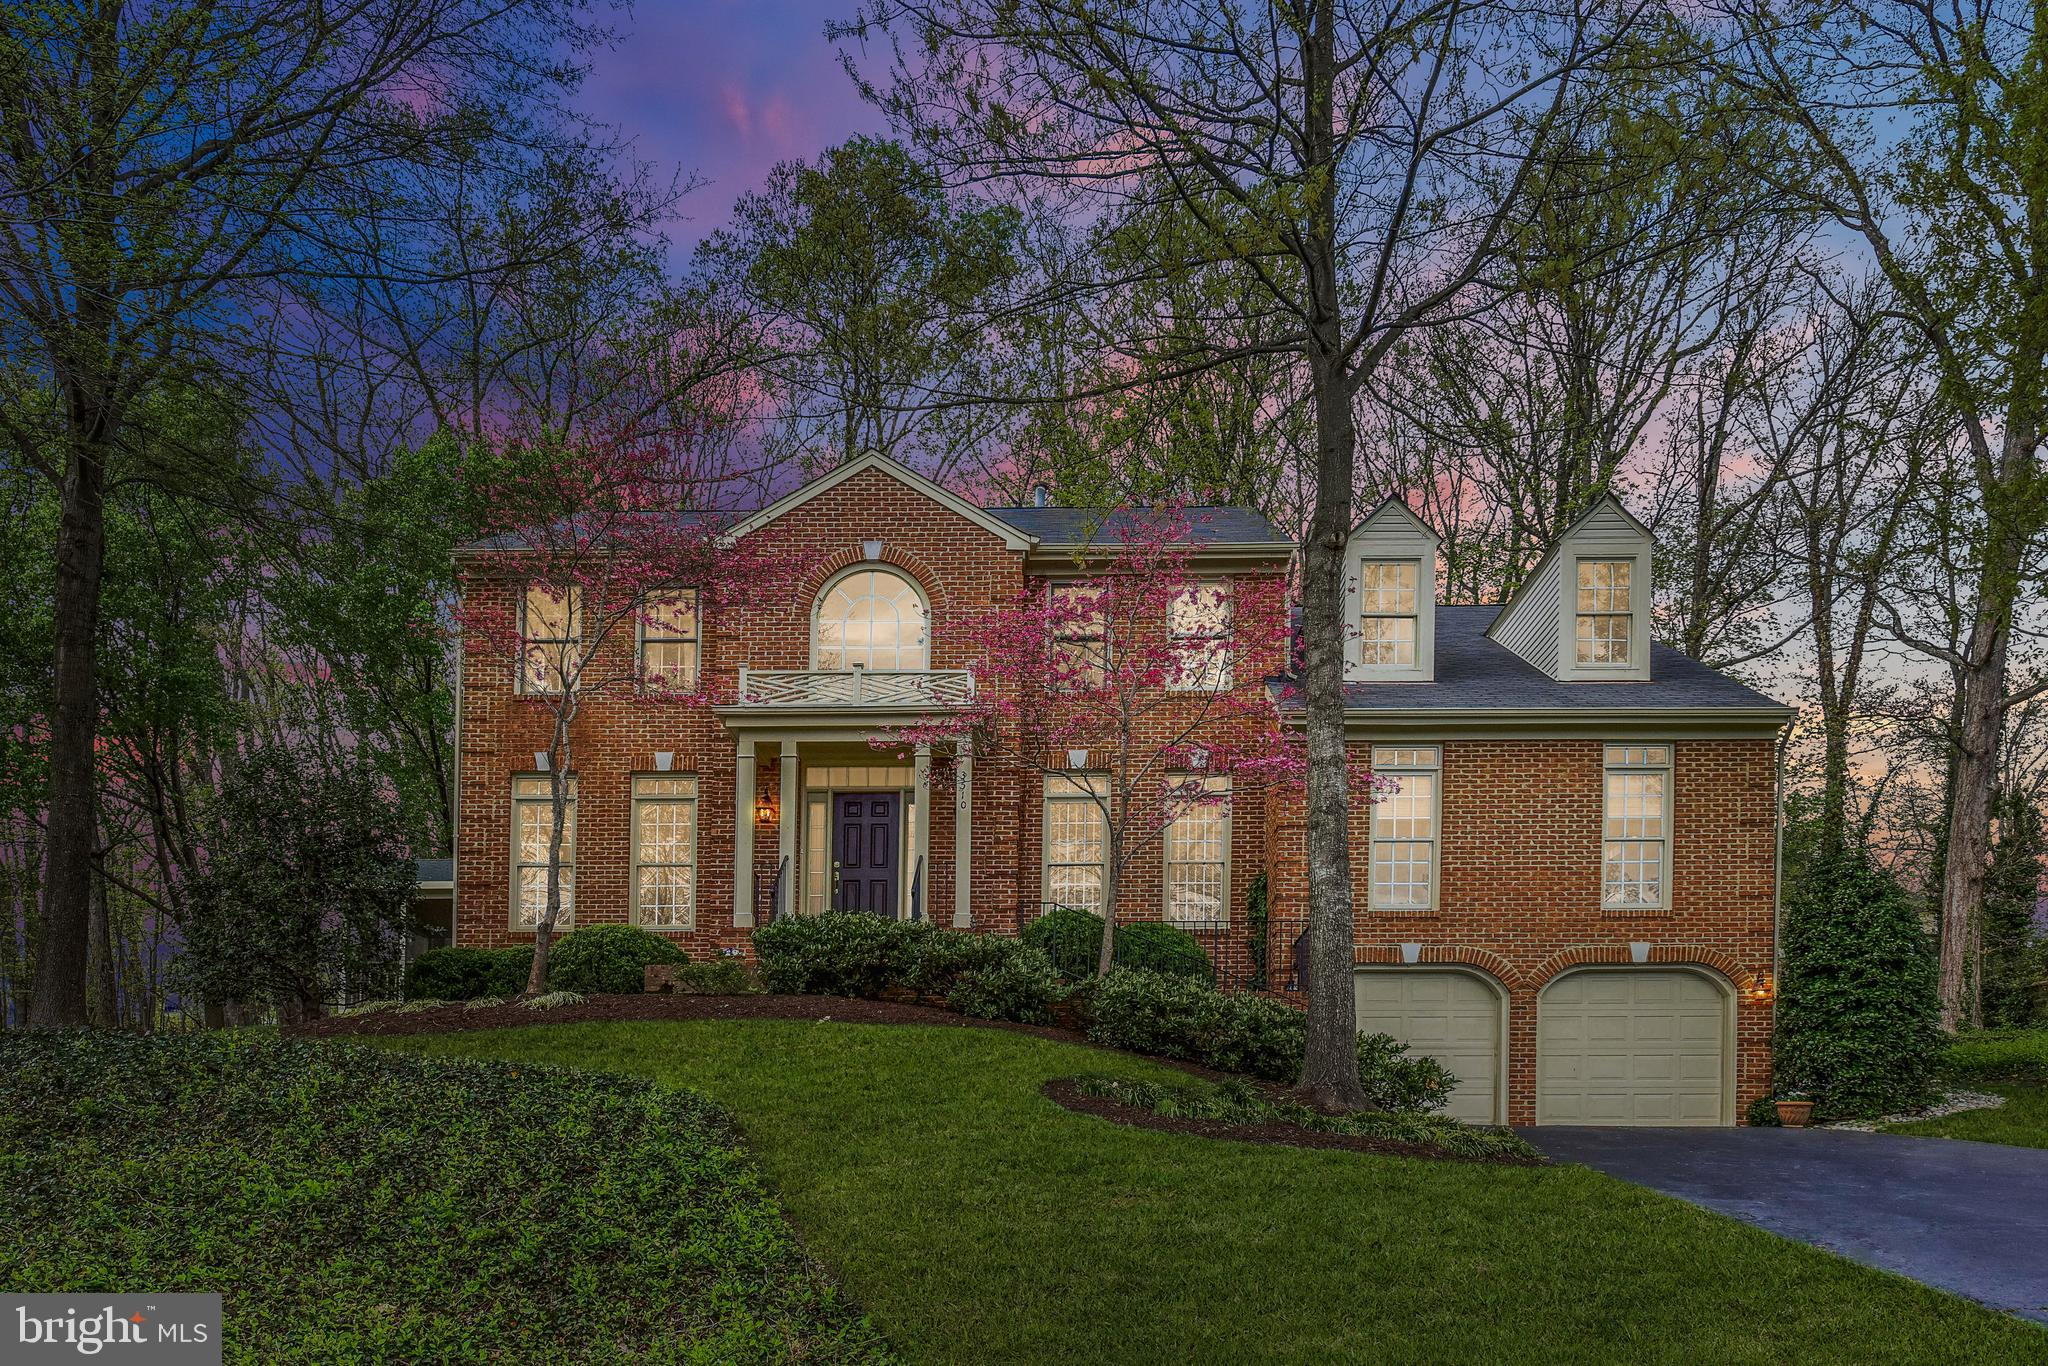 This gorgeous center hall Colonial offers an abundance of space you would not imagine. Built on a corner lot, and surrounded by peaceful mature trees, this stately residence has been meticulously cared for by one owner since it was built in 1995. Walking into a grand two-story foyer entrance, the cathedral ceiling entry soars and showcases a stunning Palladian window. Refined hardwood floors warm the main level and wind through all rooms with the exception of one, which offers plush new carpet. Upon entering, the foyer is flanked by an office/den or formal living room. Both capture your attention and command an audience. The living room has a wood burning fireplace and mantle and naturally flows into the formal dining room making future entertaining comfortable. Accenting the dining room are architectural columns that give it a refined feel and a beautiful bay window. Extending a dinner party outside is made simple with the addition of a tranquil screened in porch accessed off the dining room. Can anyone say nightcap? Moving to the most loved room of any home, the kitchen, you will want to put your culinary skills to work here! Stainless appliances, a double oven, ample countertop space for meal prep, and tons of cabinet storage, a large pantry, built-in desk, and breakfast bar all overlook the eat-in niche and adjoin the family room with a gas fireplace and brick hearth to curl up next to in the colder months. And just when think this floor is complete, you~d be wrong - from the family room, through French glass doors, there is a great room ideal for kicking back and relaxing. Oh, and did we mention the laundry room and a half bath are also on this level? Phew- think we got it all now. Ascending the staircase that leads to the upper level, there is a large landing that gives you the opportunity to sink in that there are 4 graciously sized bedrooms, including the master, destined for all day sleeps-ins available, as well as 3 full baths. The master bedroom is a sanc